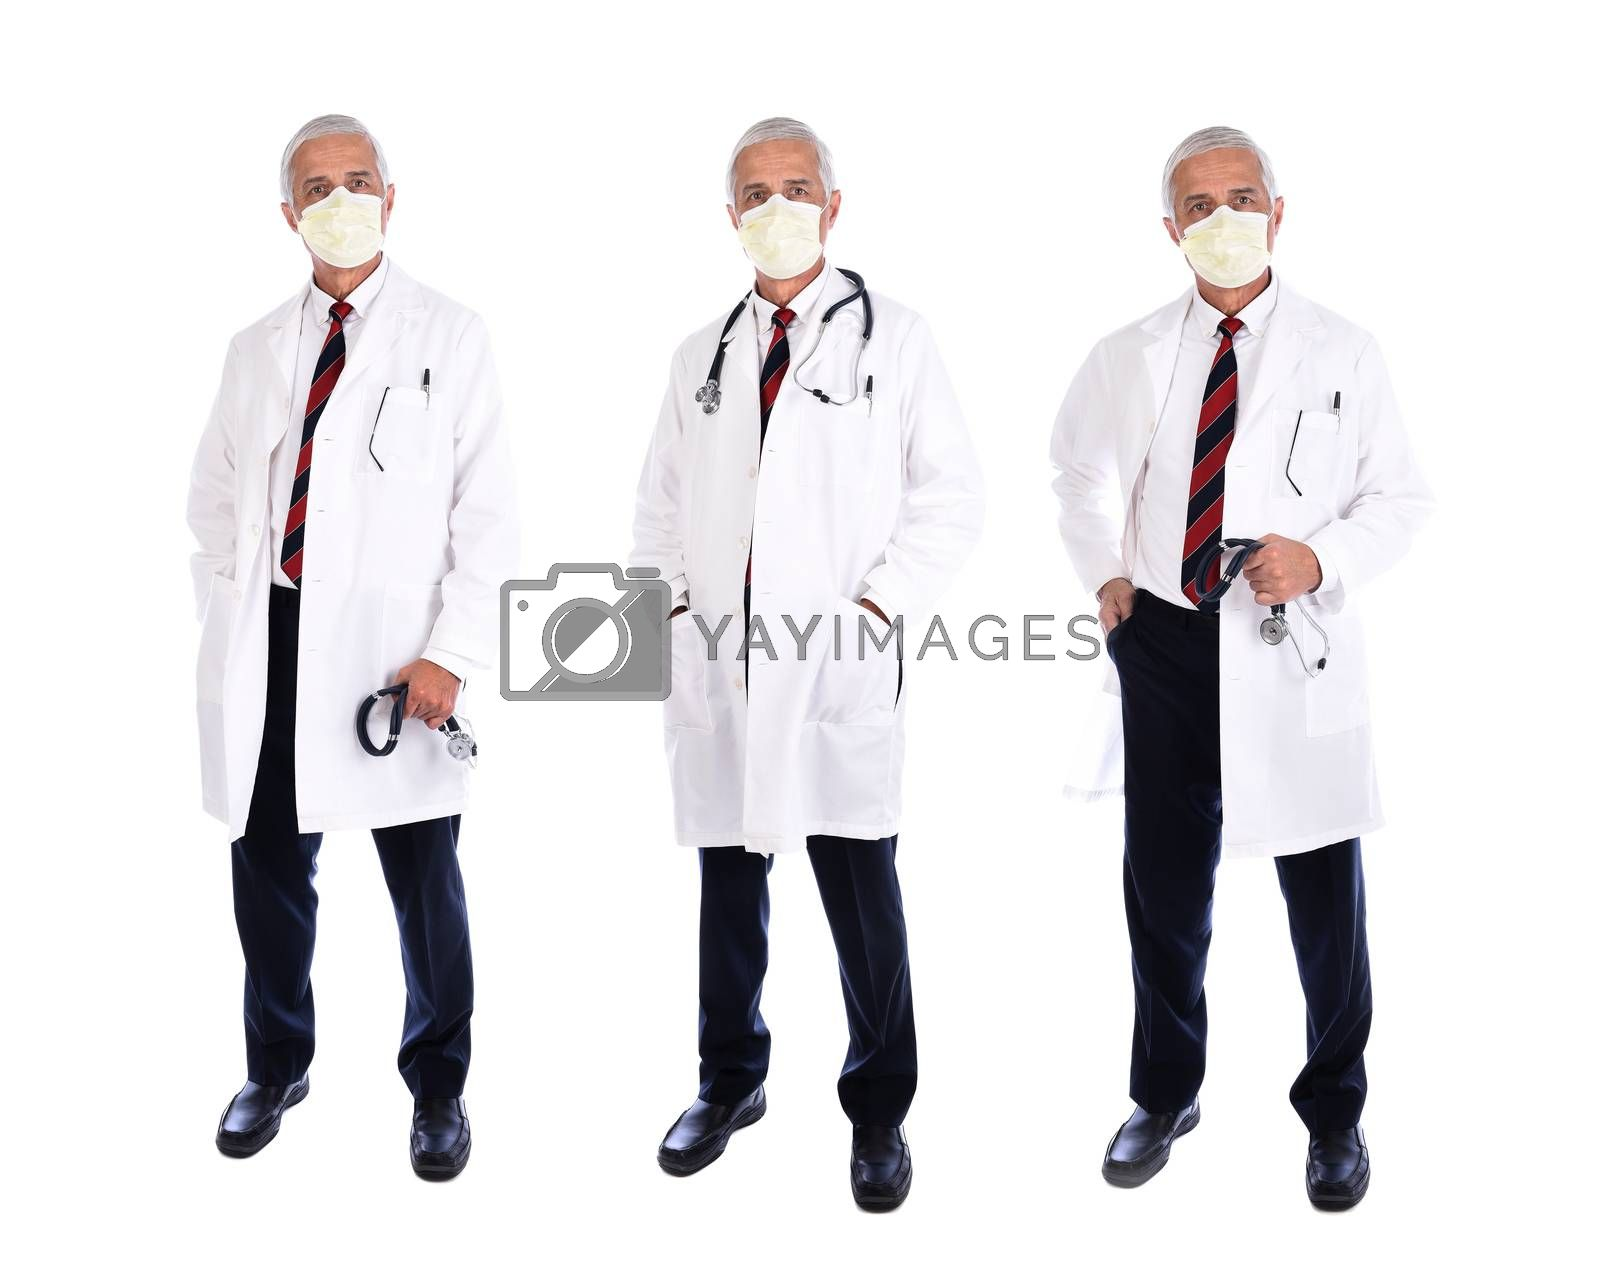 Three views of a mature doctor holding wearing a lab coat and mask in different poses, isolated on white.